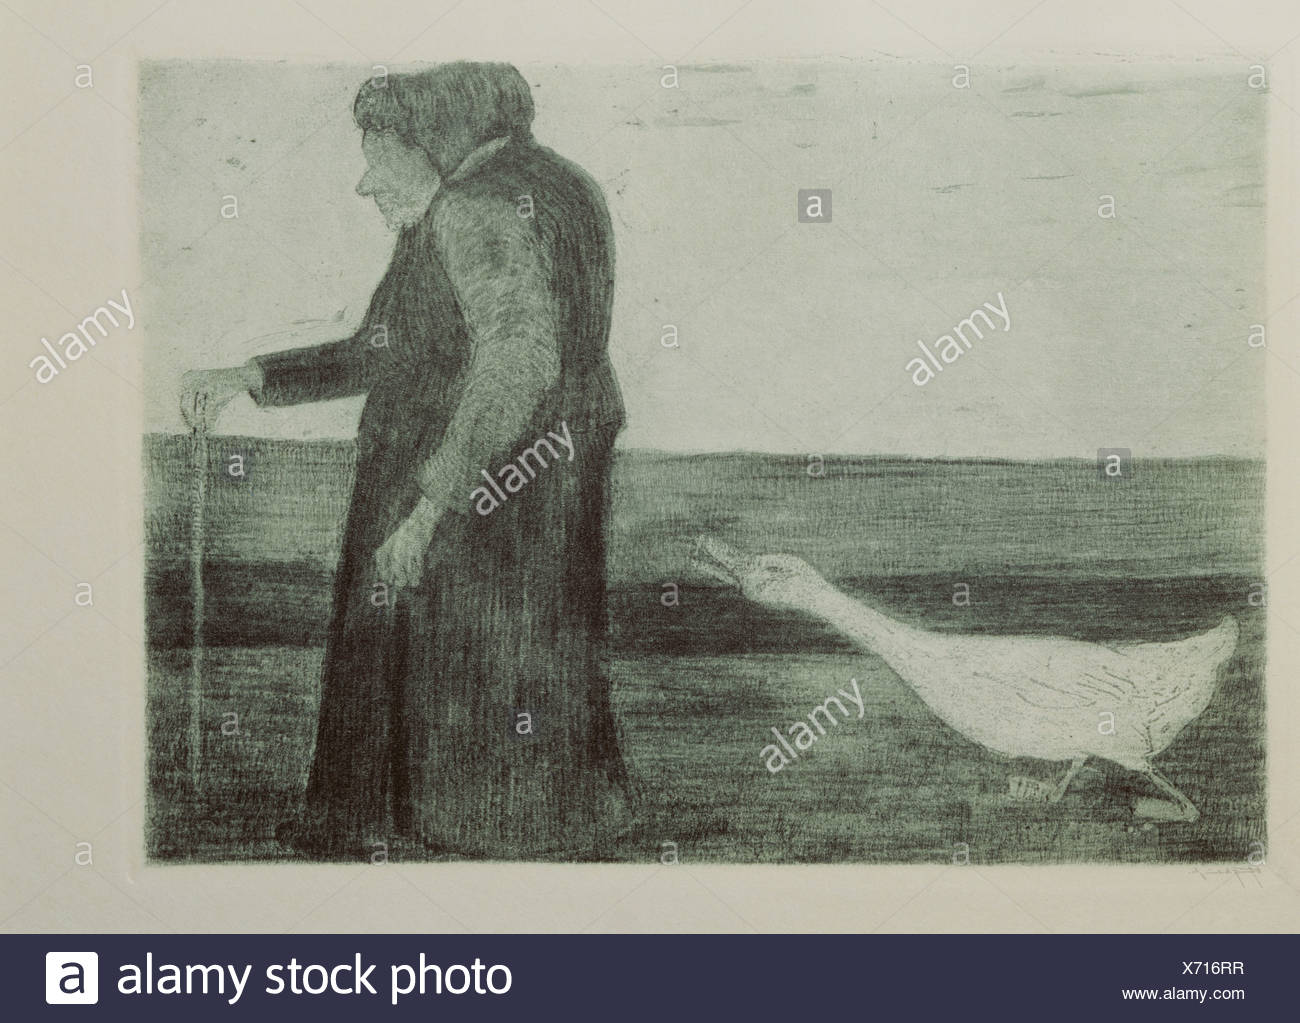 fine arts, Modersohn-Becker, Paula (1876 - 1906), grafik, 'Woman with goose', etching, aquatinta, 1902, Kunsthalle Kiel, , Artist's Copyright has not to be cleared - Stock Image